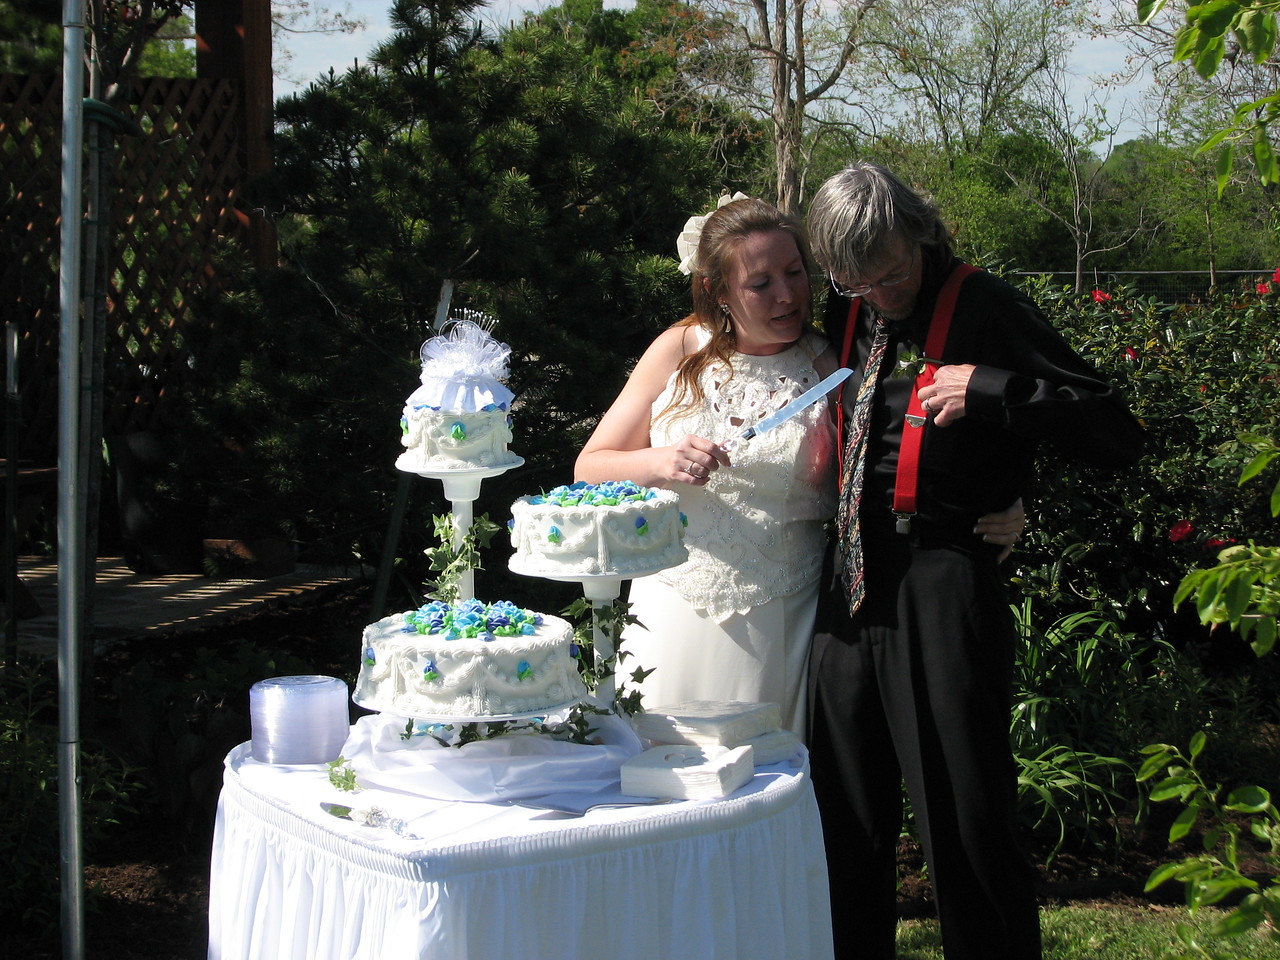 The Bride and Groom are getting down to the Happy Cutting and wearing of the cake!! Weddings and Parties are available at Green Acres Garden!! Green Acres Garden B&B - Luxury in the country! Private Cottage on Lake Lavon...